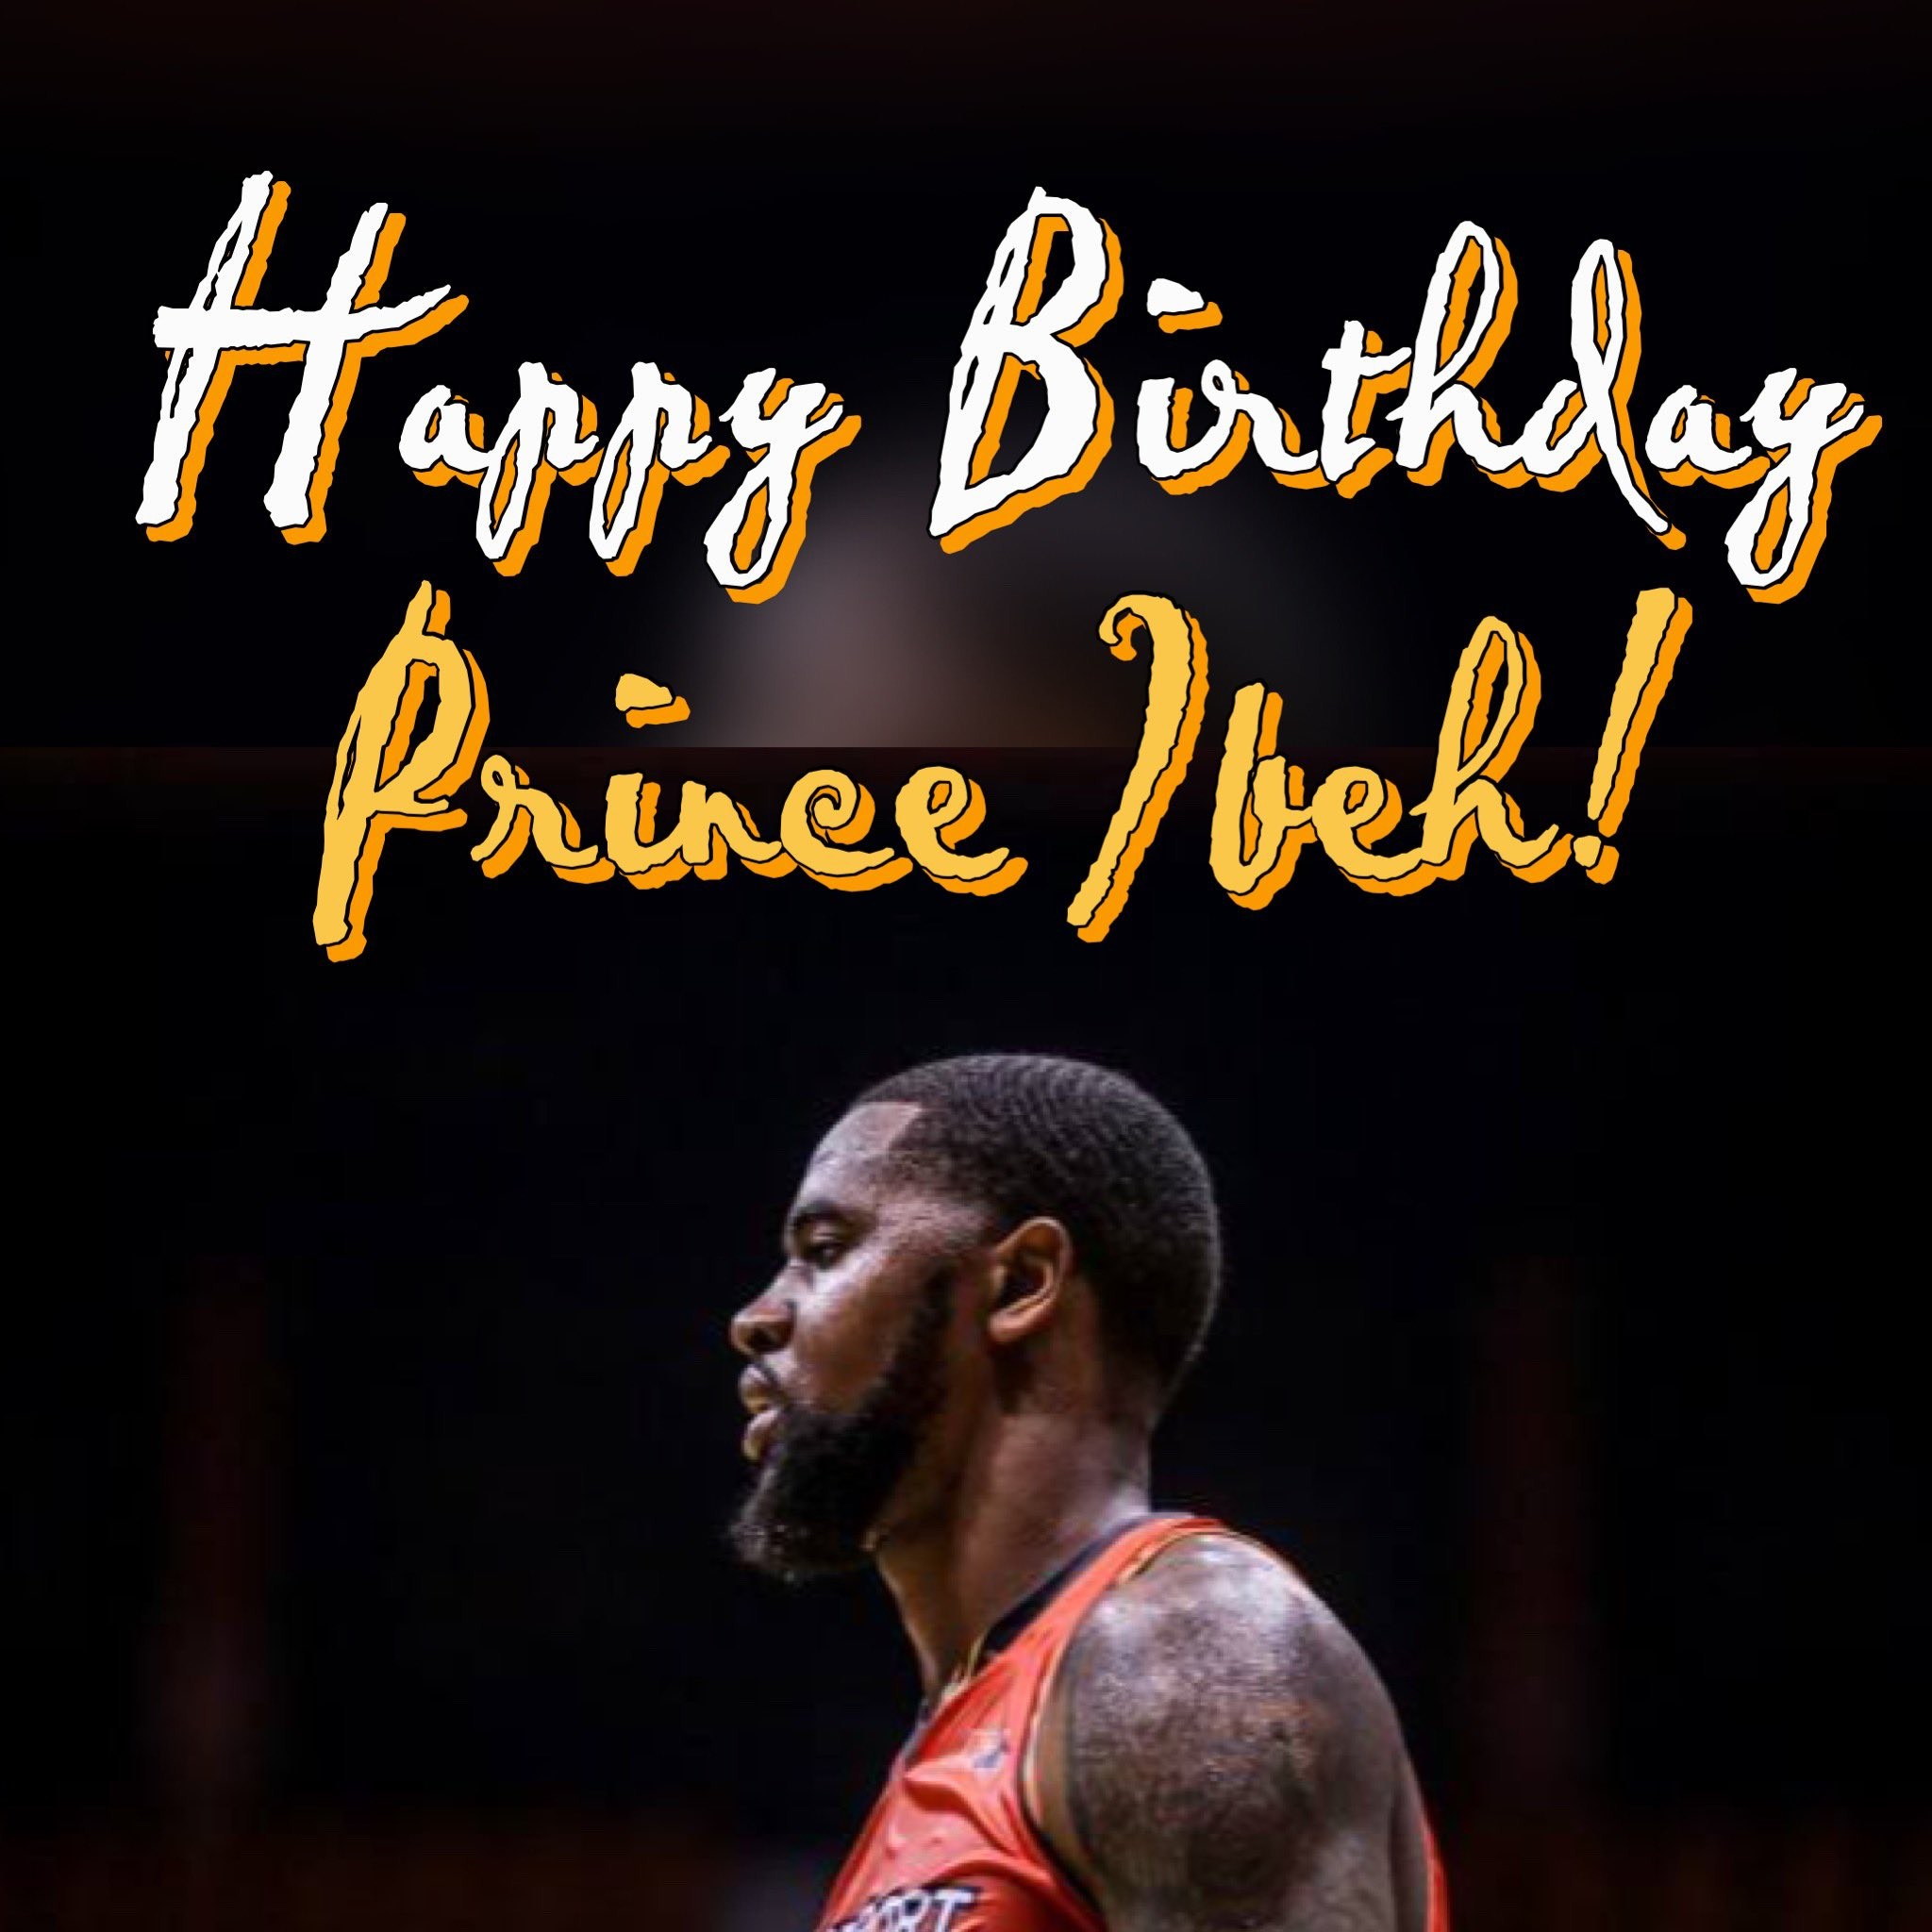 Late post: Happy Birthday to our hardworking import, Prince Ibeh!